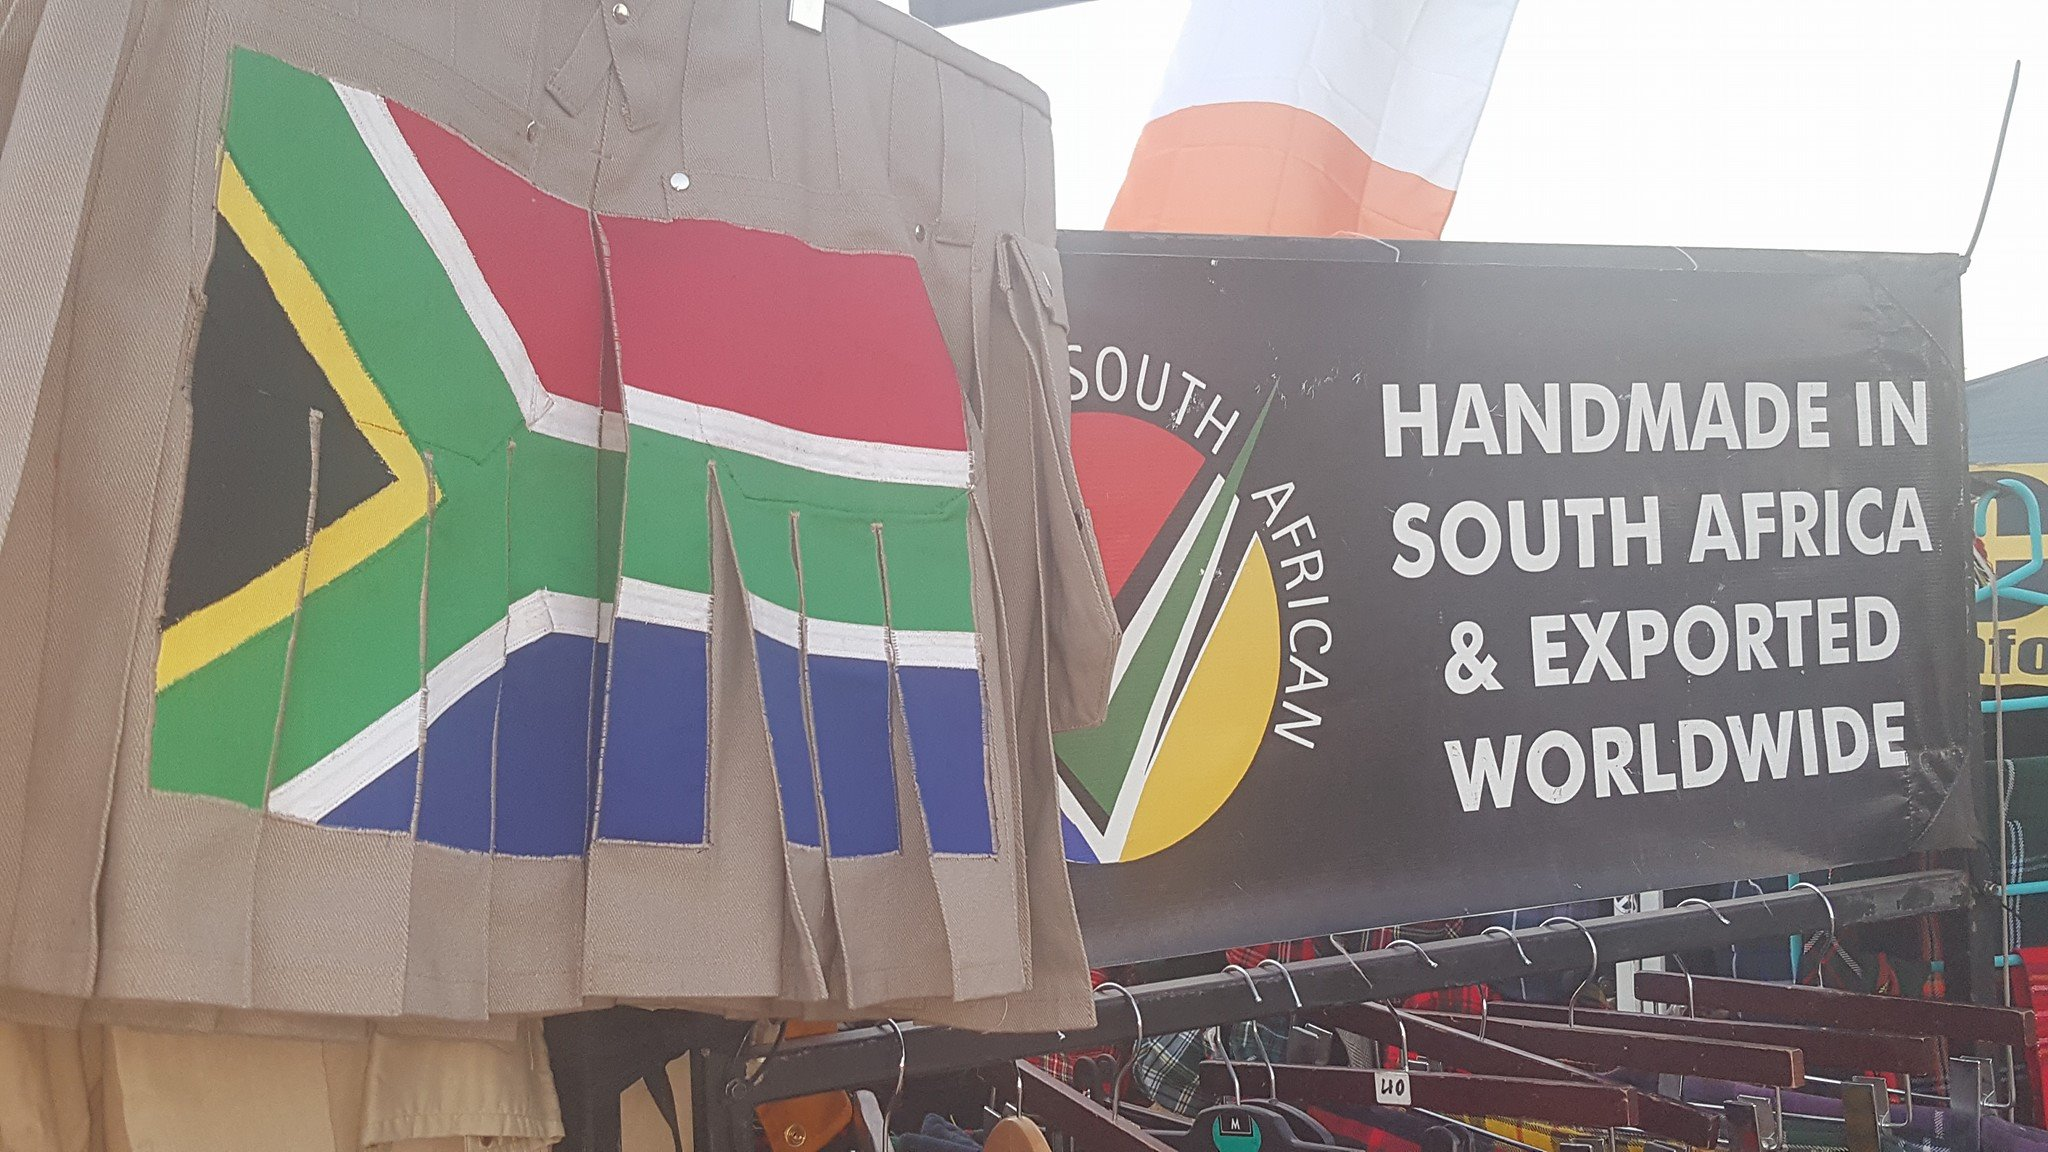 handmade kilts in south africa